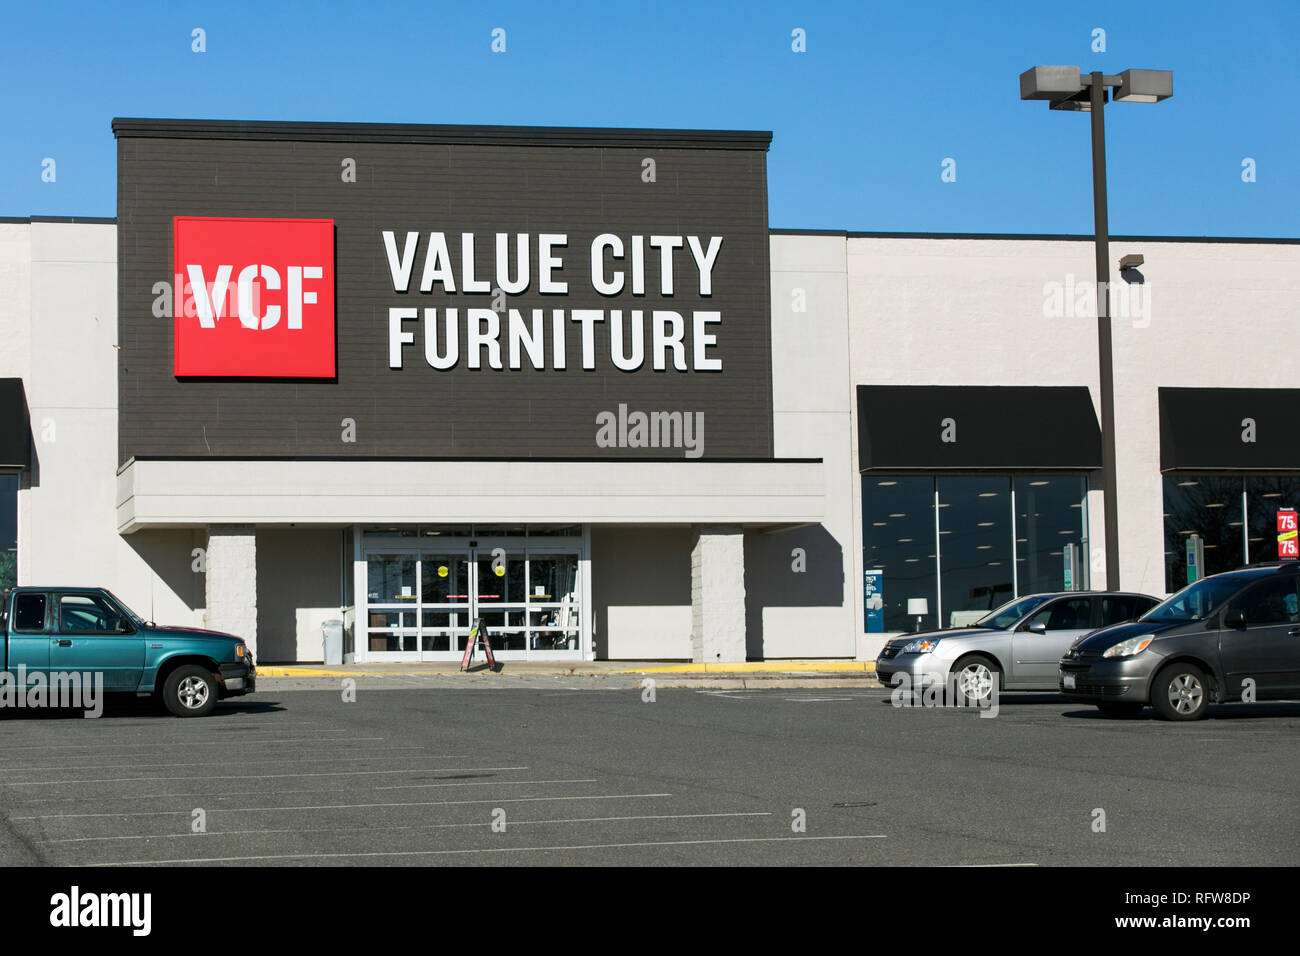 Virginia Furniture Stock Photos & Virginia Furniture Stock